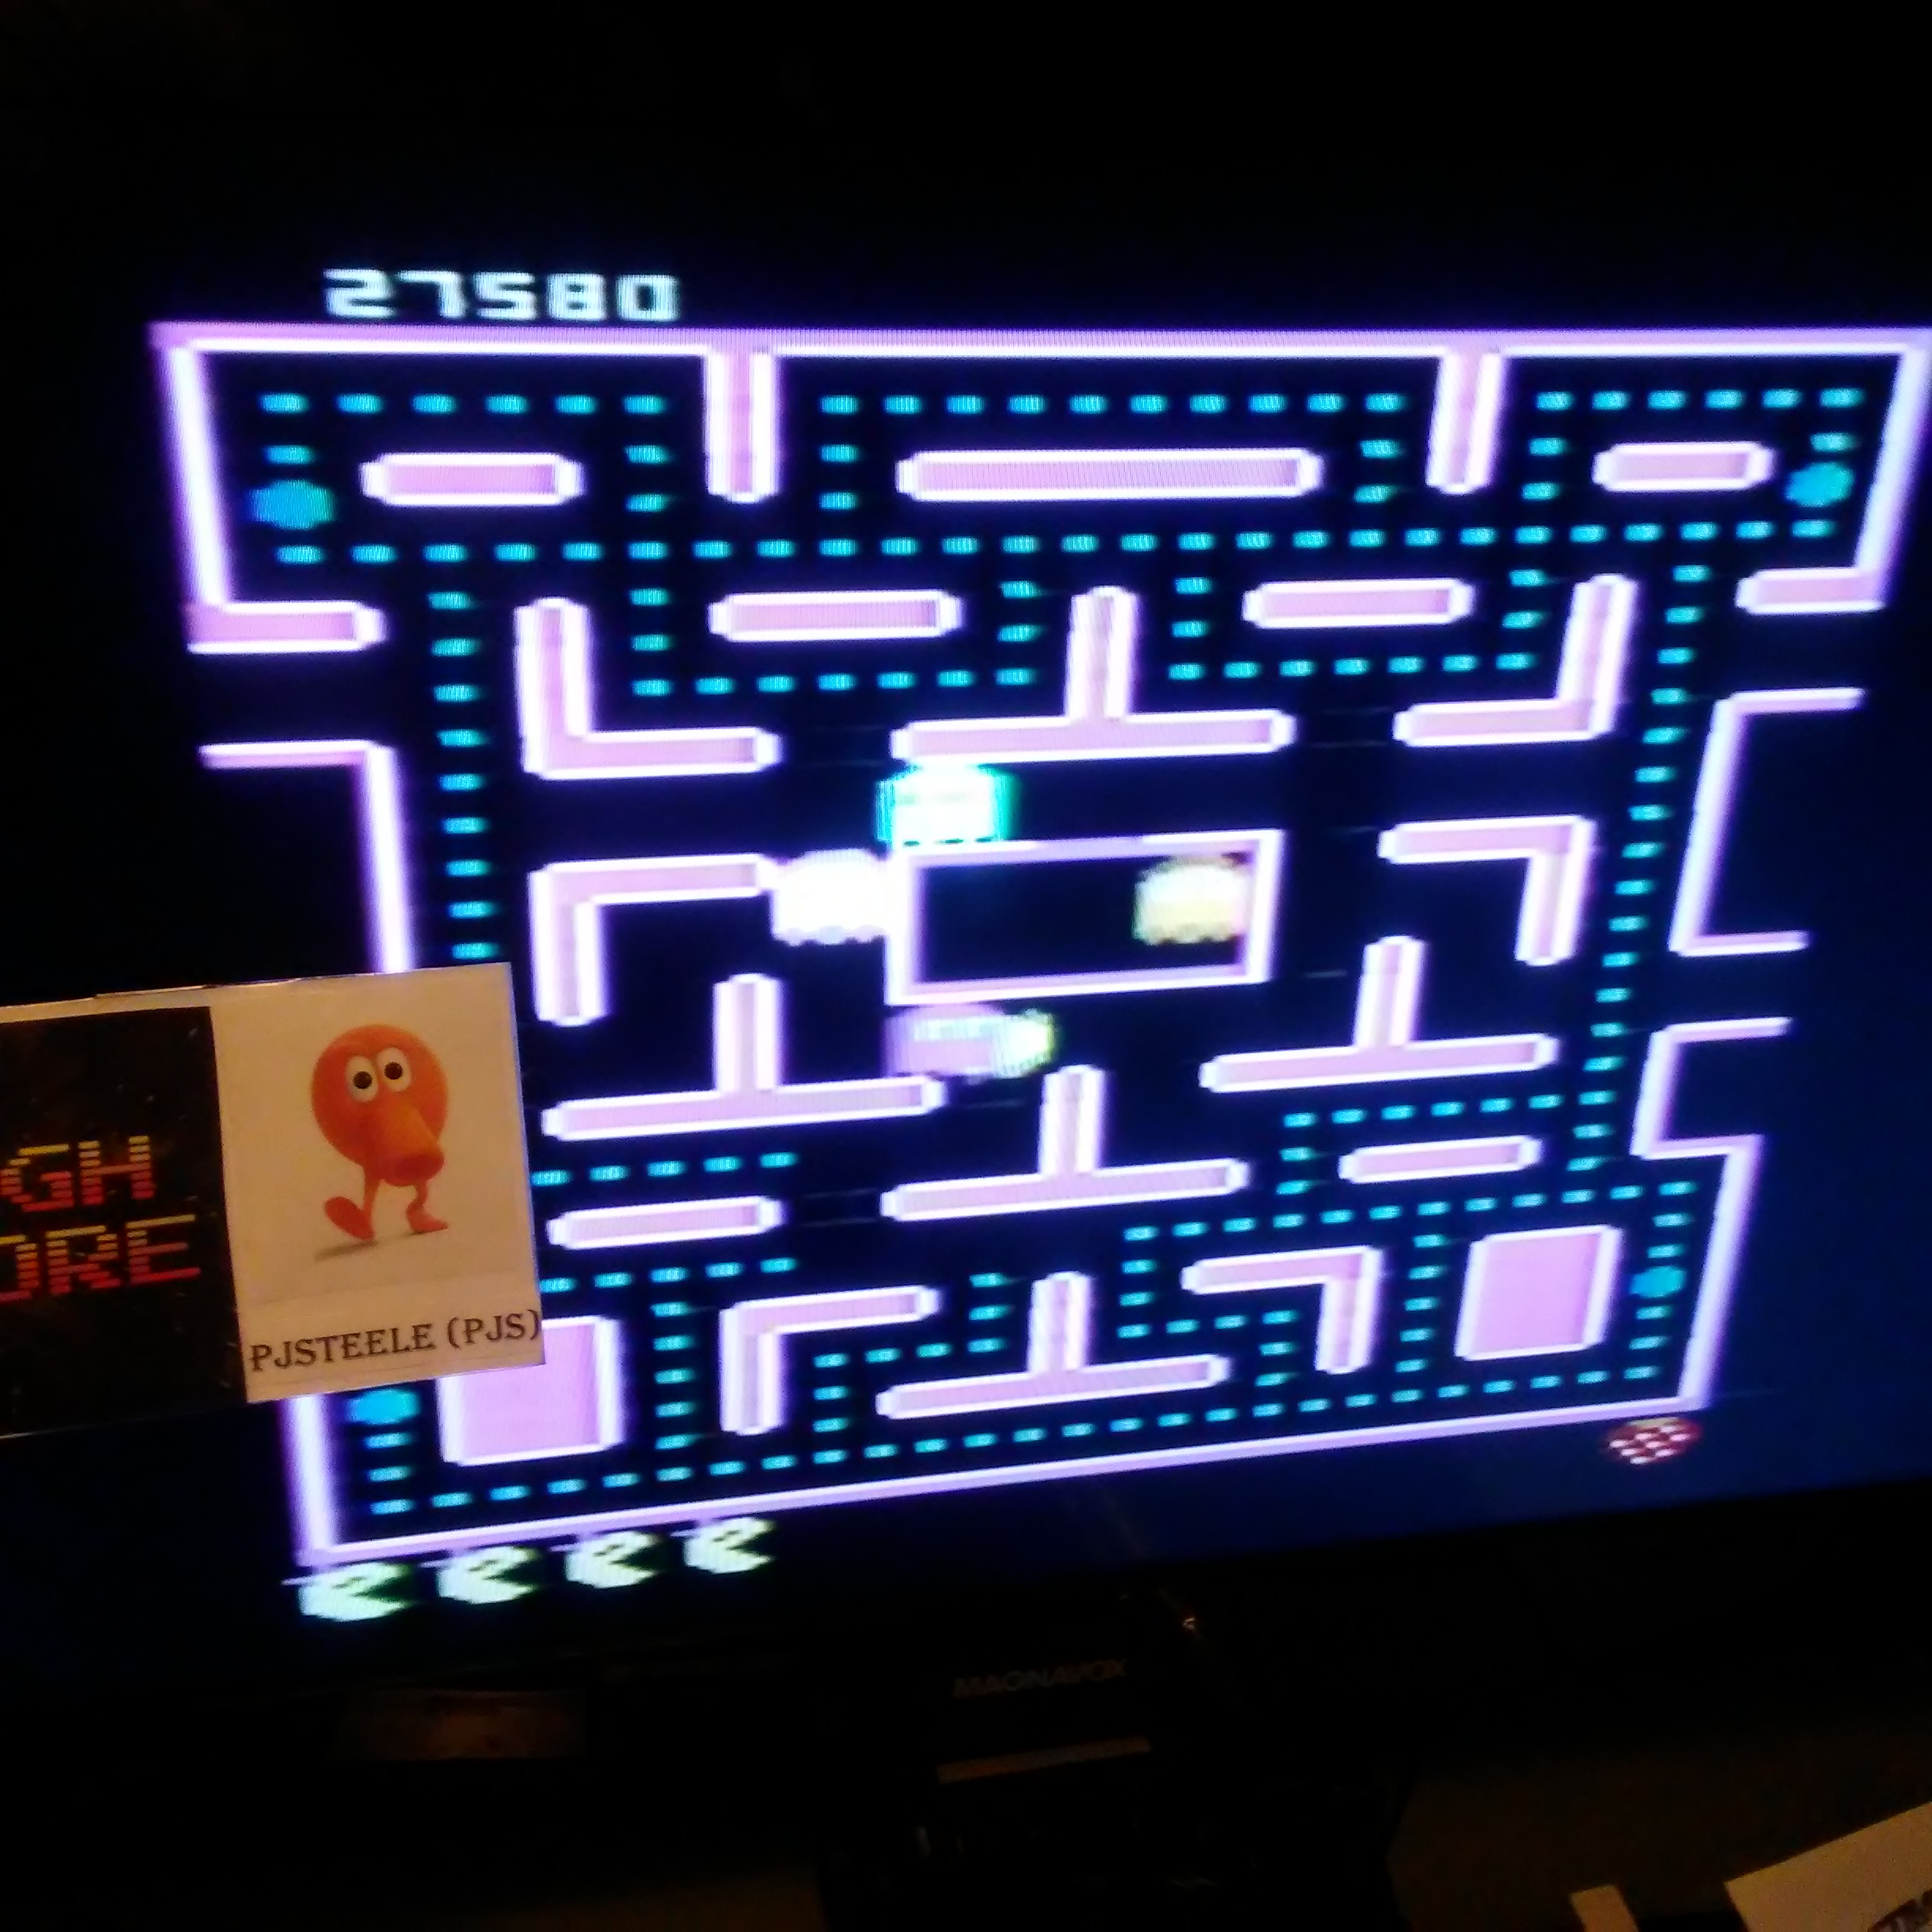 Pjsteele: Ms. Pac-Man: Strawberry Start (Atari 7800) 27,580 points on 2018-07-02 21:46:40